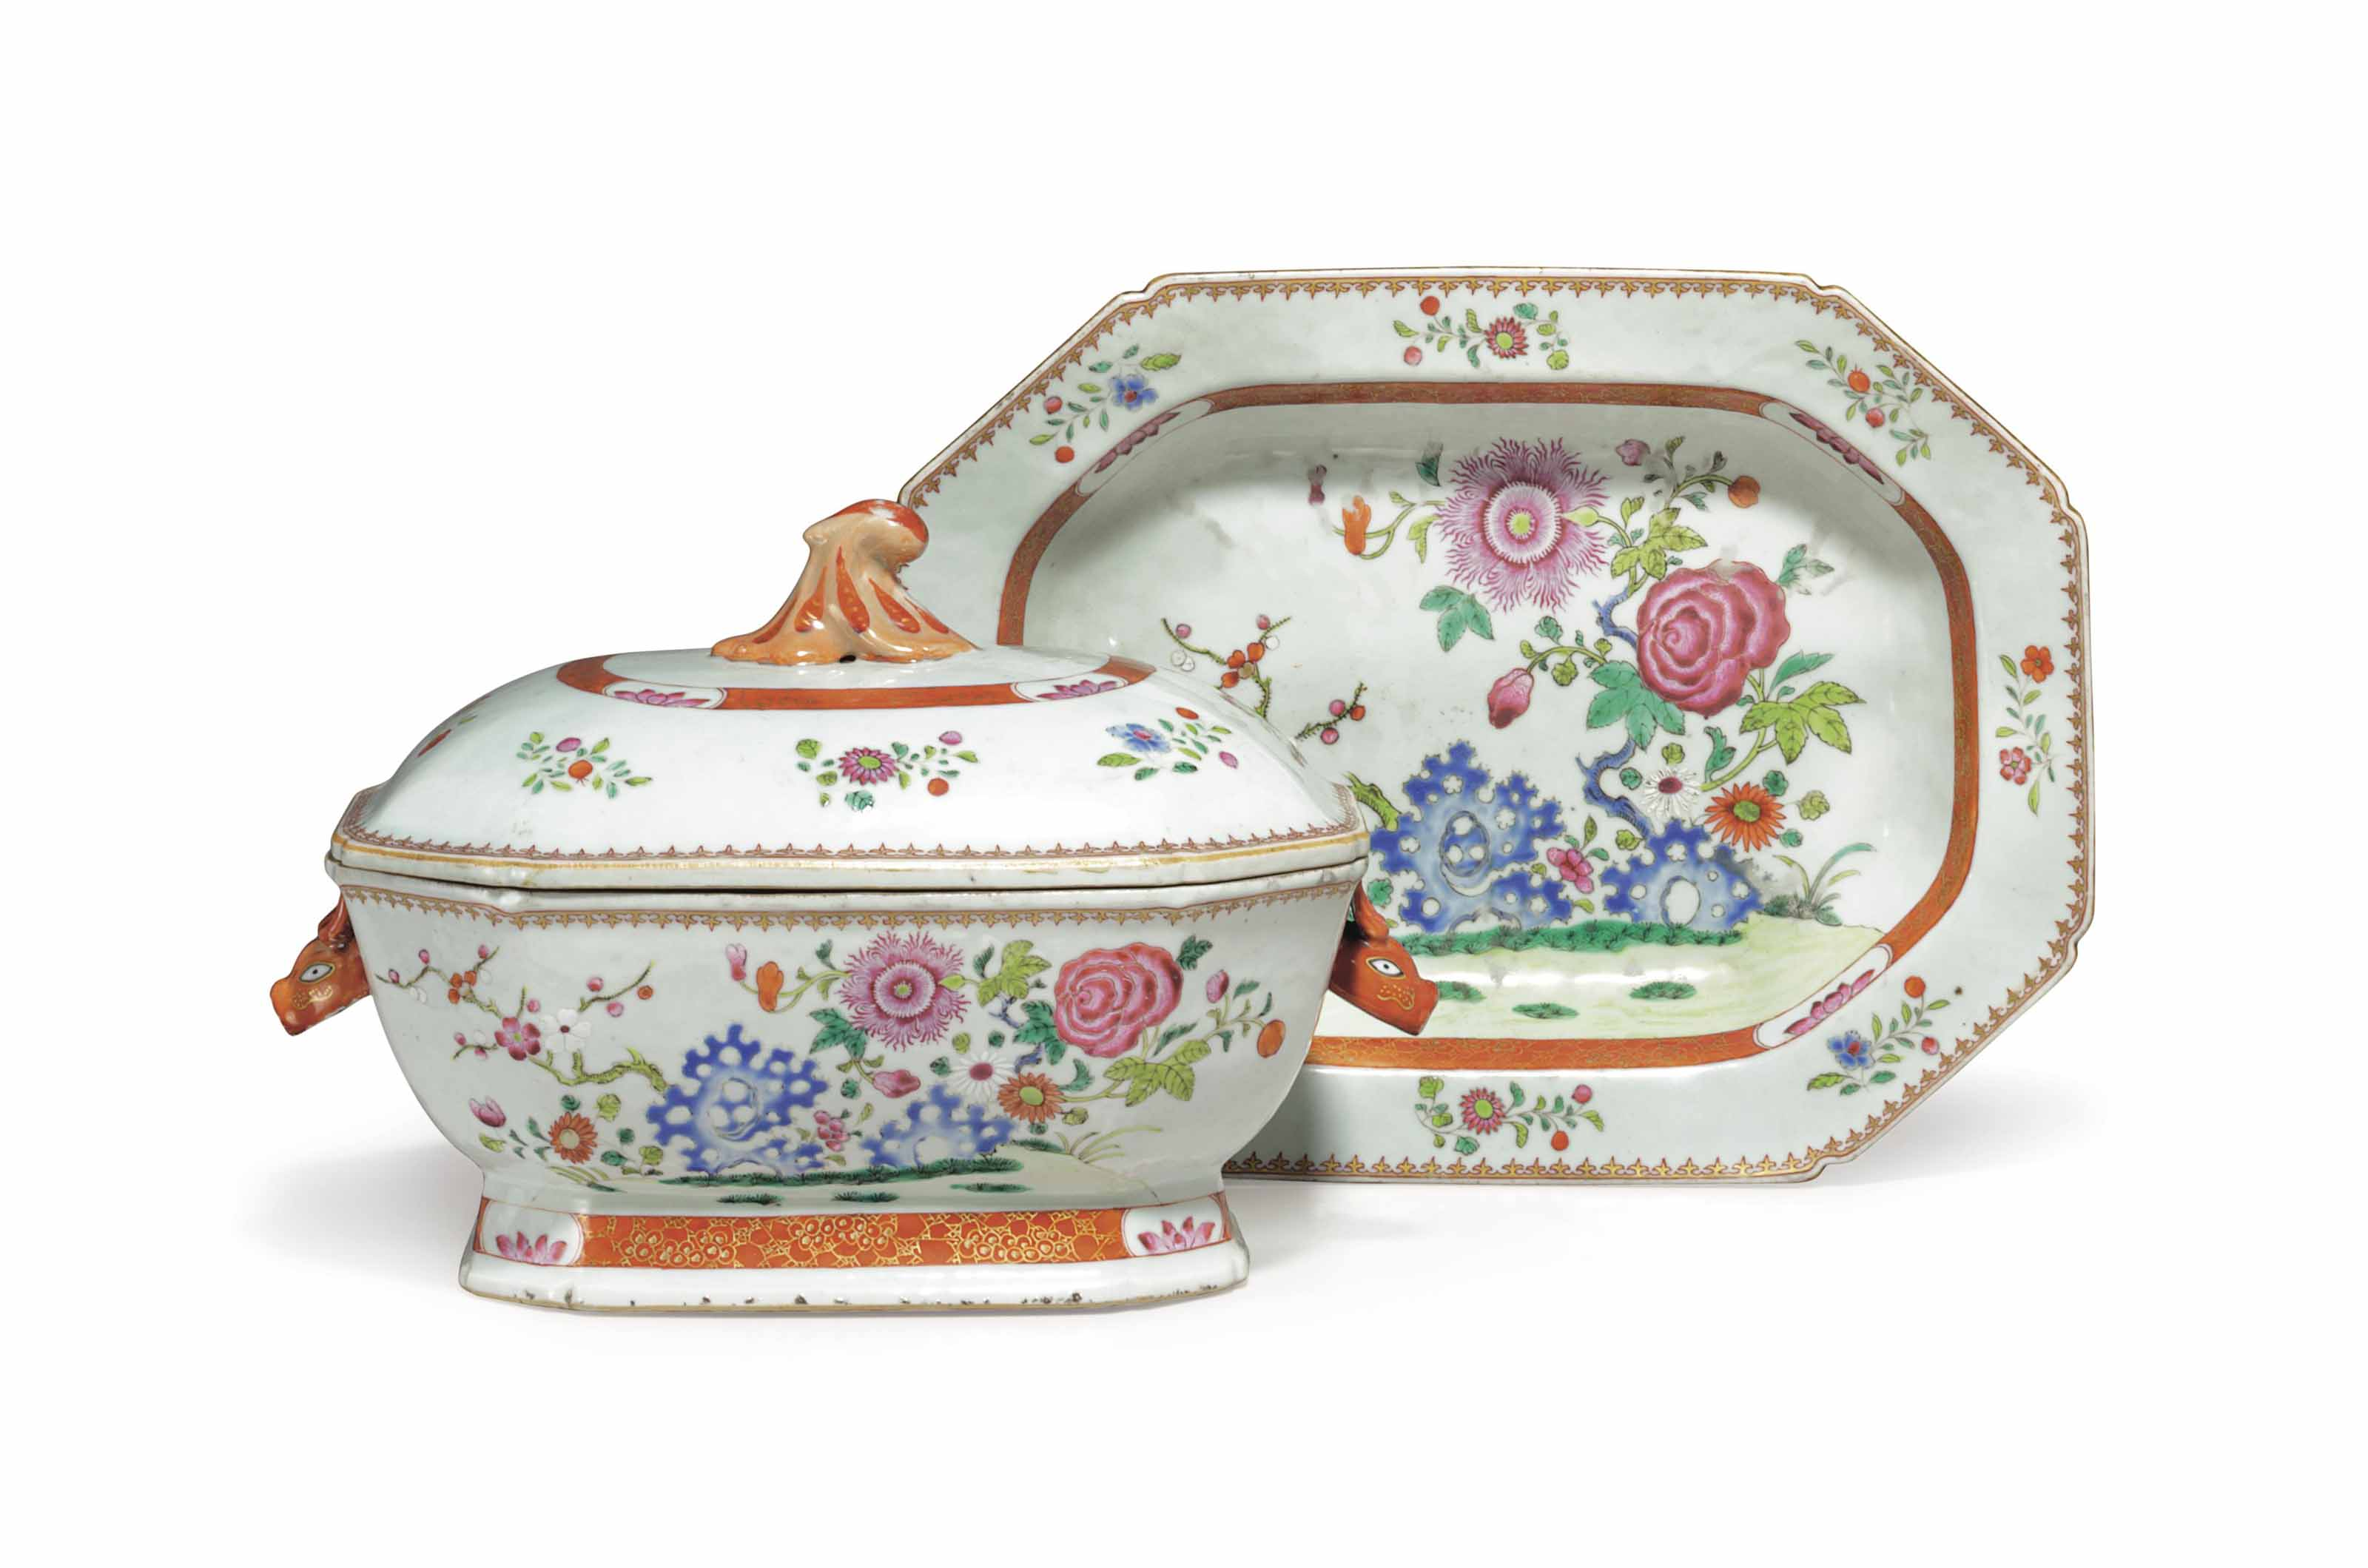 A CHINESE EXPORT PORCELAIN FAMILLE ROSE SHAPED OCTAGONAL SOUP TUREEN, COVER AND STAND